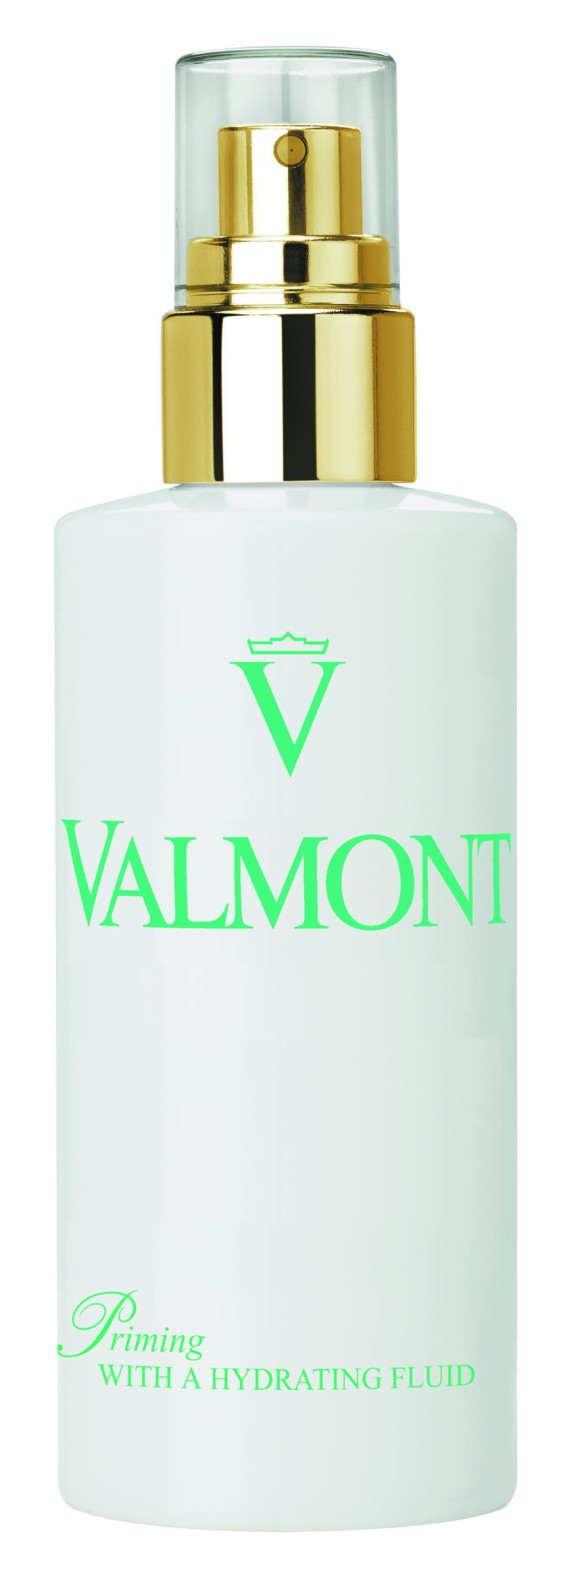 Valmont Hydration - Priming with a hydration fluid Euro 98,00 (125ml)